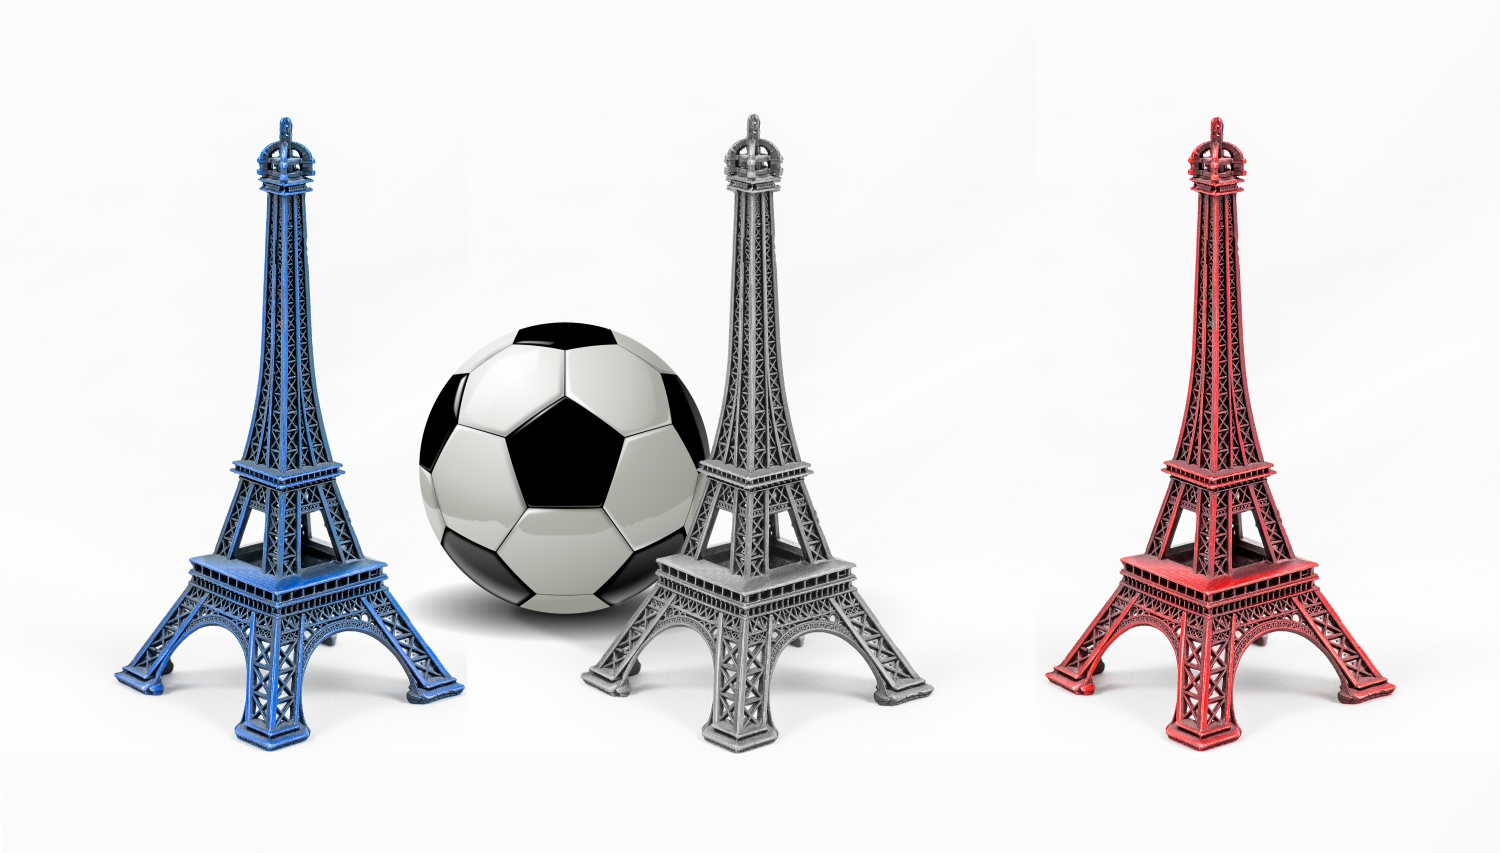 Multicolored Eiffel Tower models